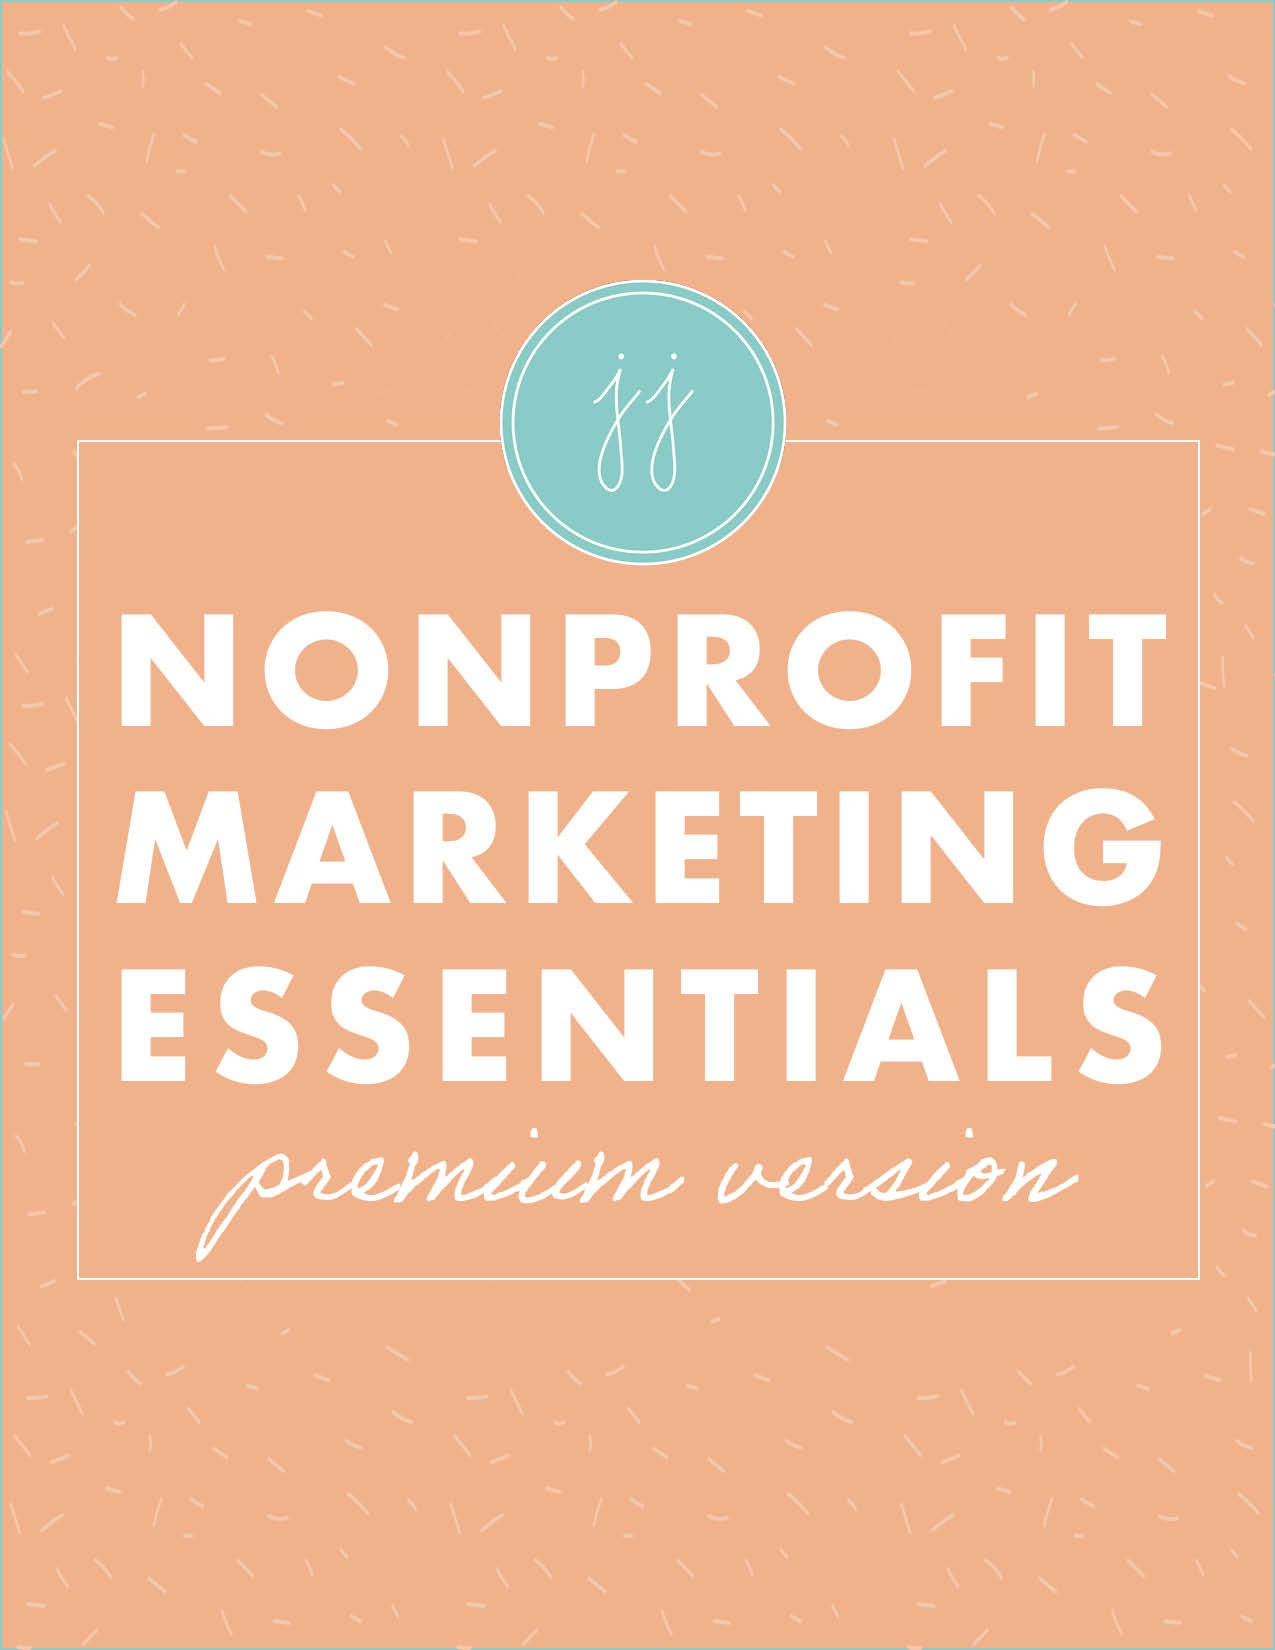 Nonprofit Marketing Essentials Premium Version